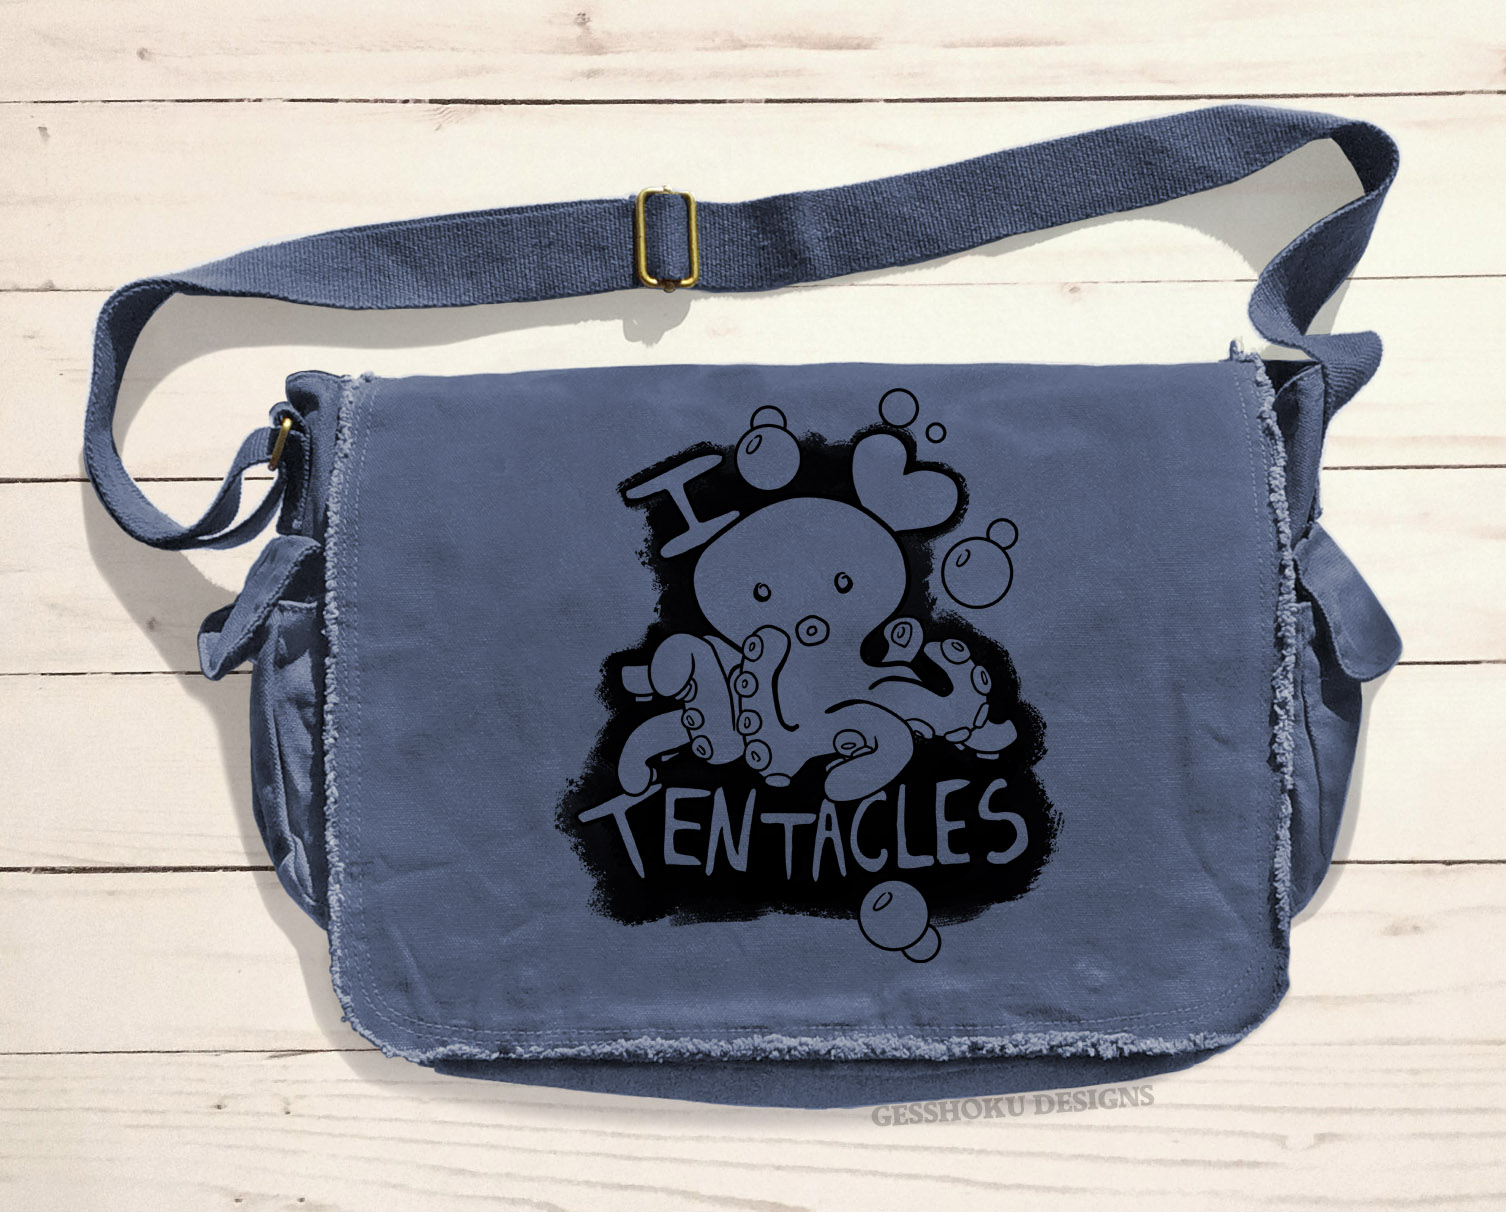 I Love Tentacles Messenger Bag - Denim Blue